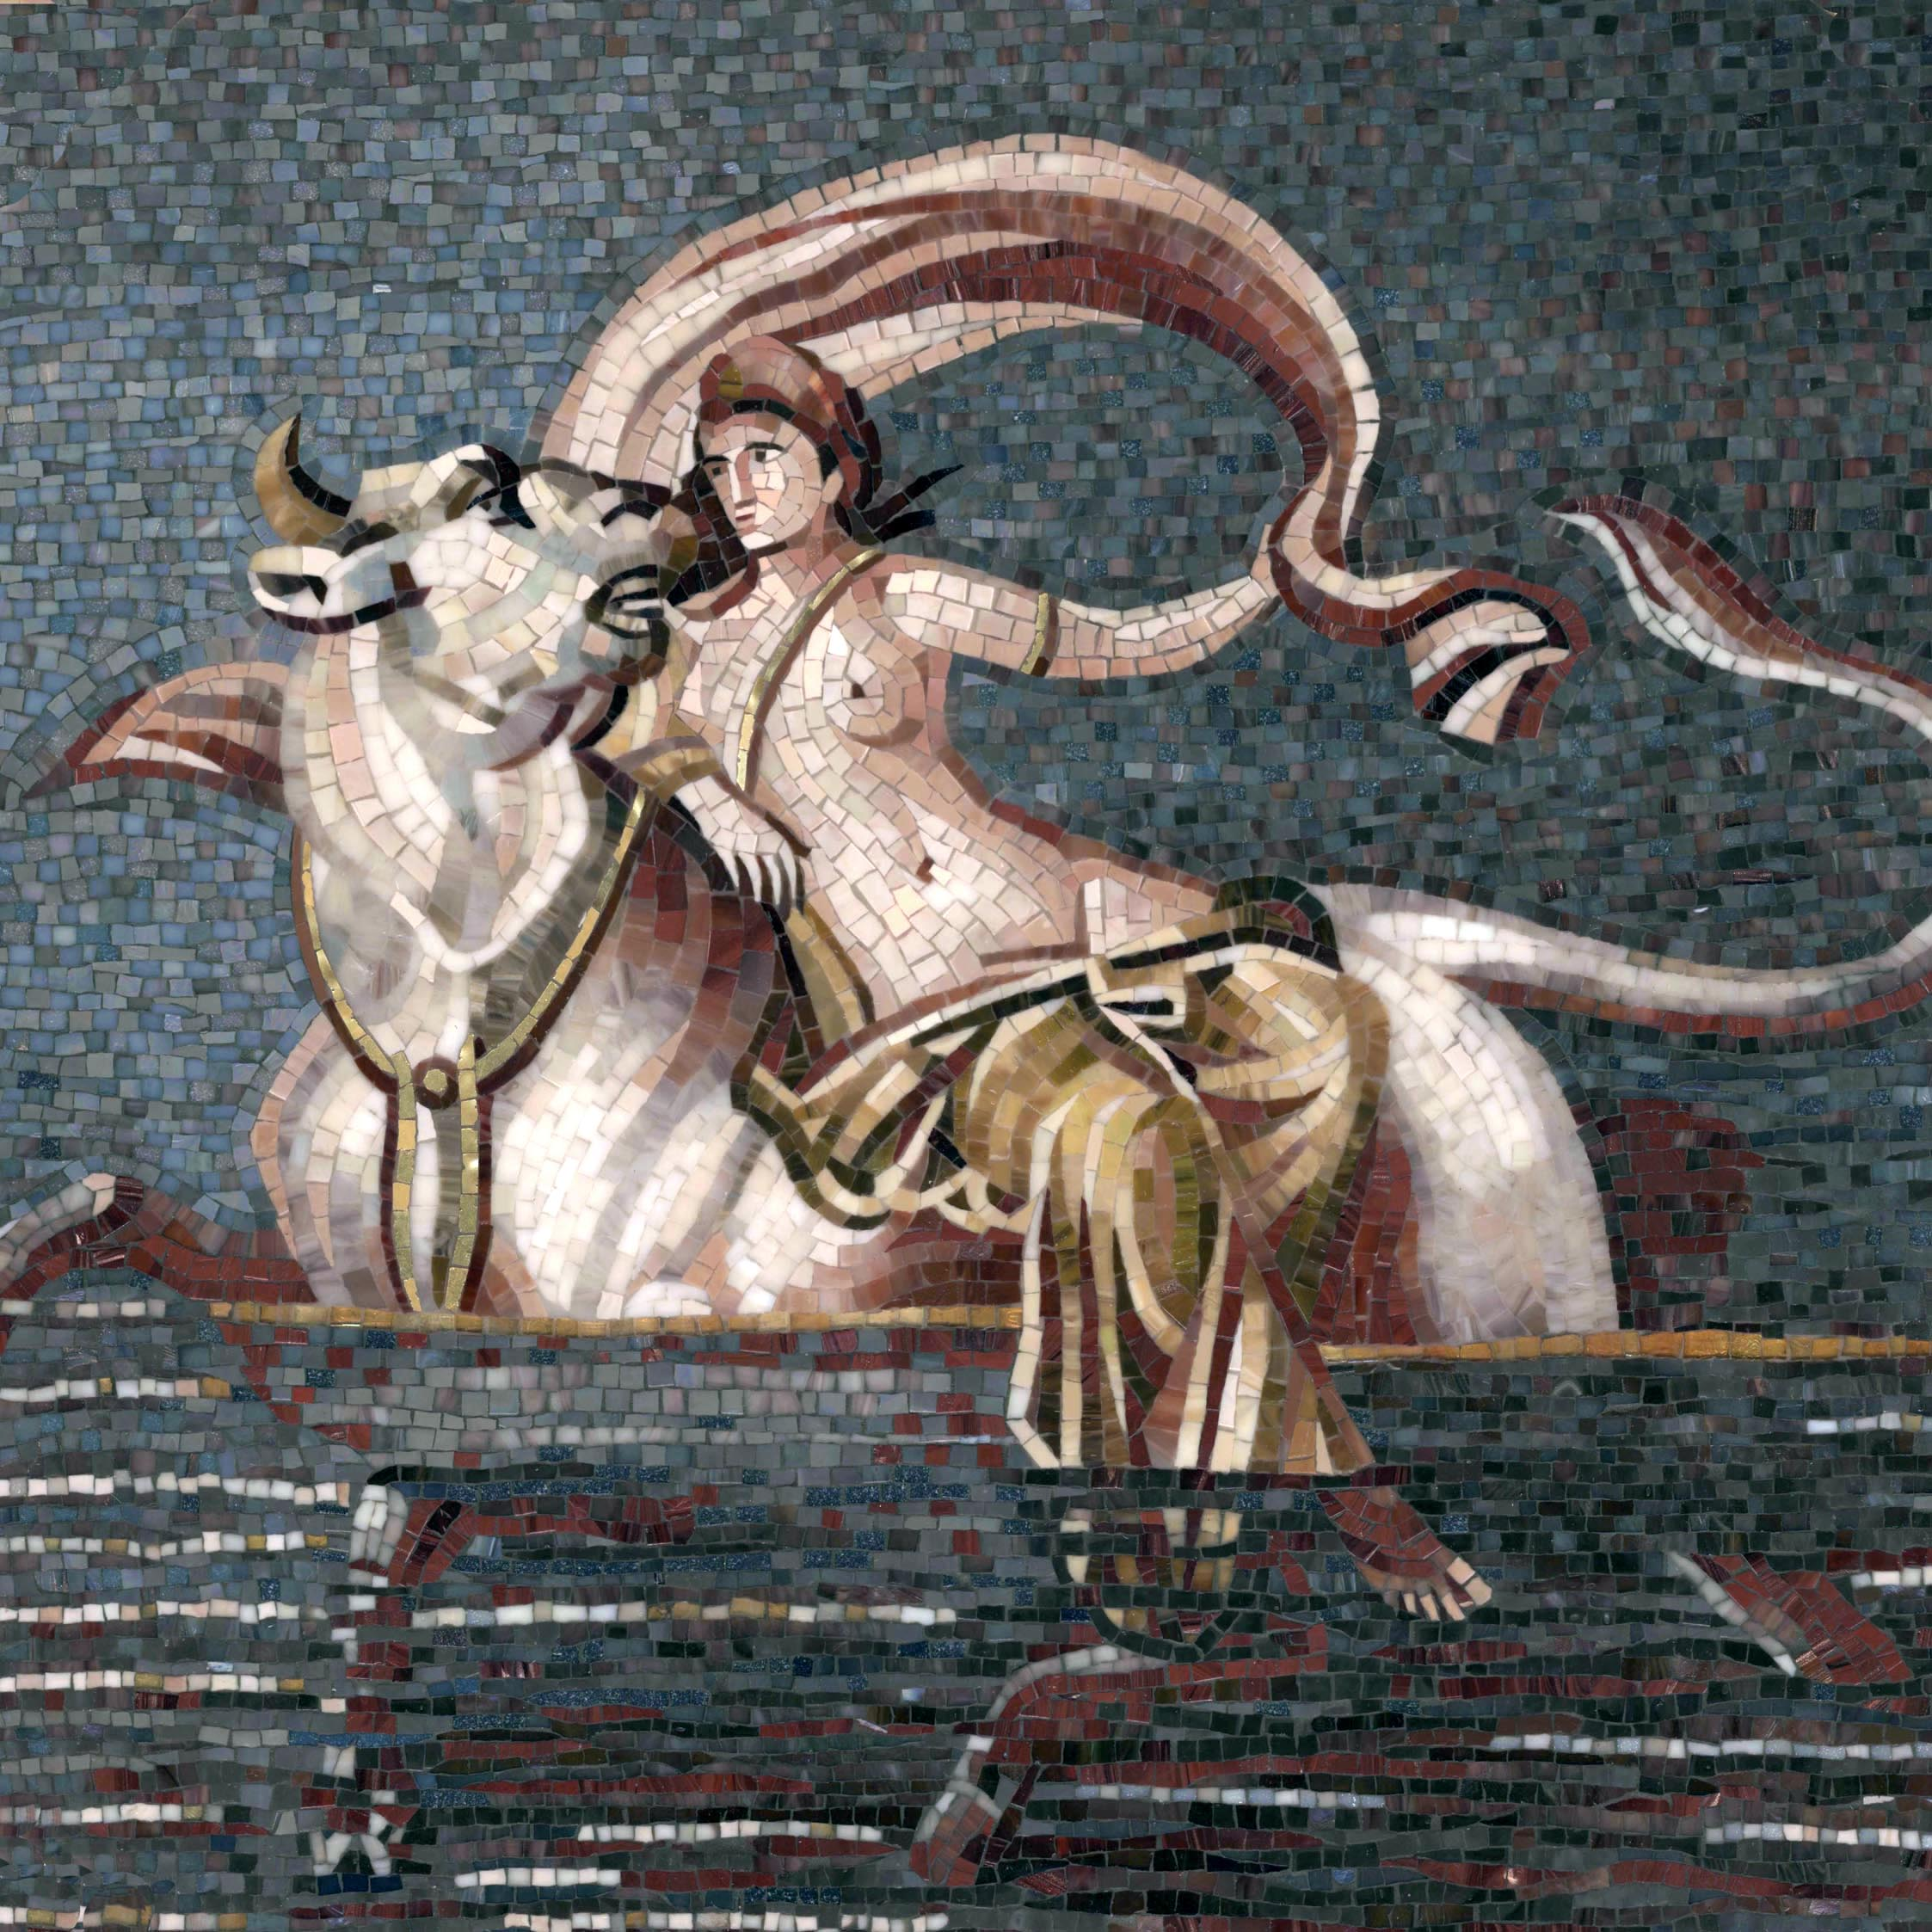 Mosaic panel The Abduction of Europe 3